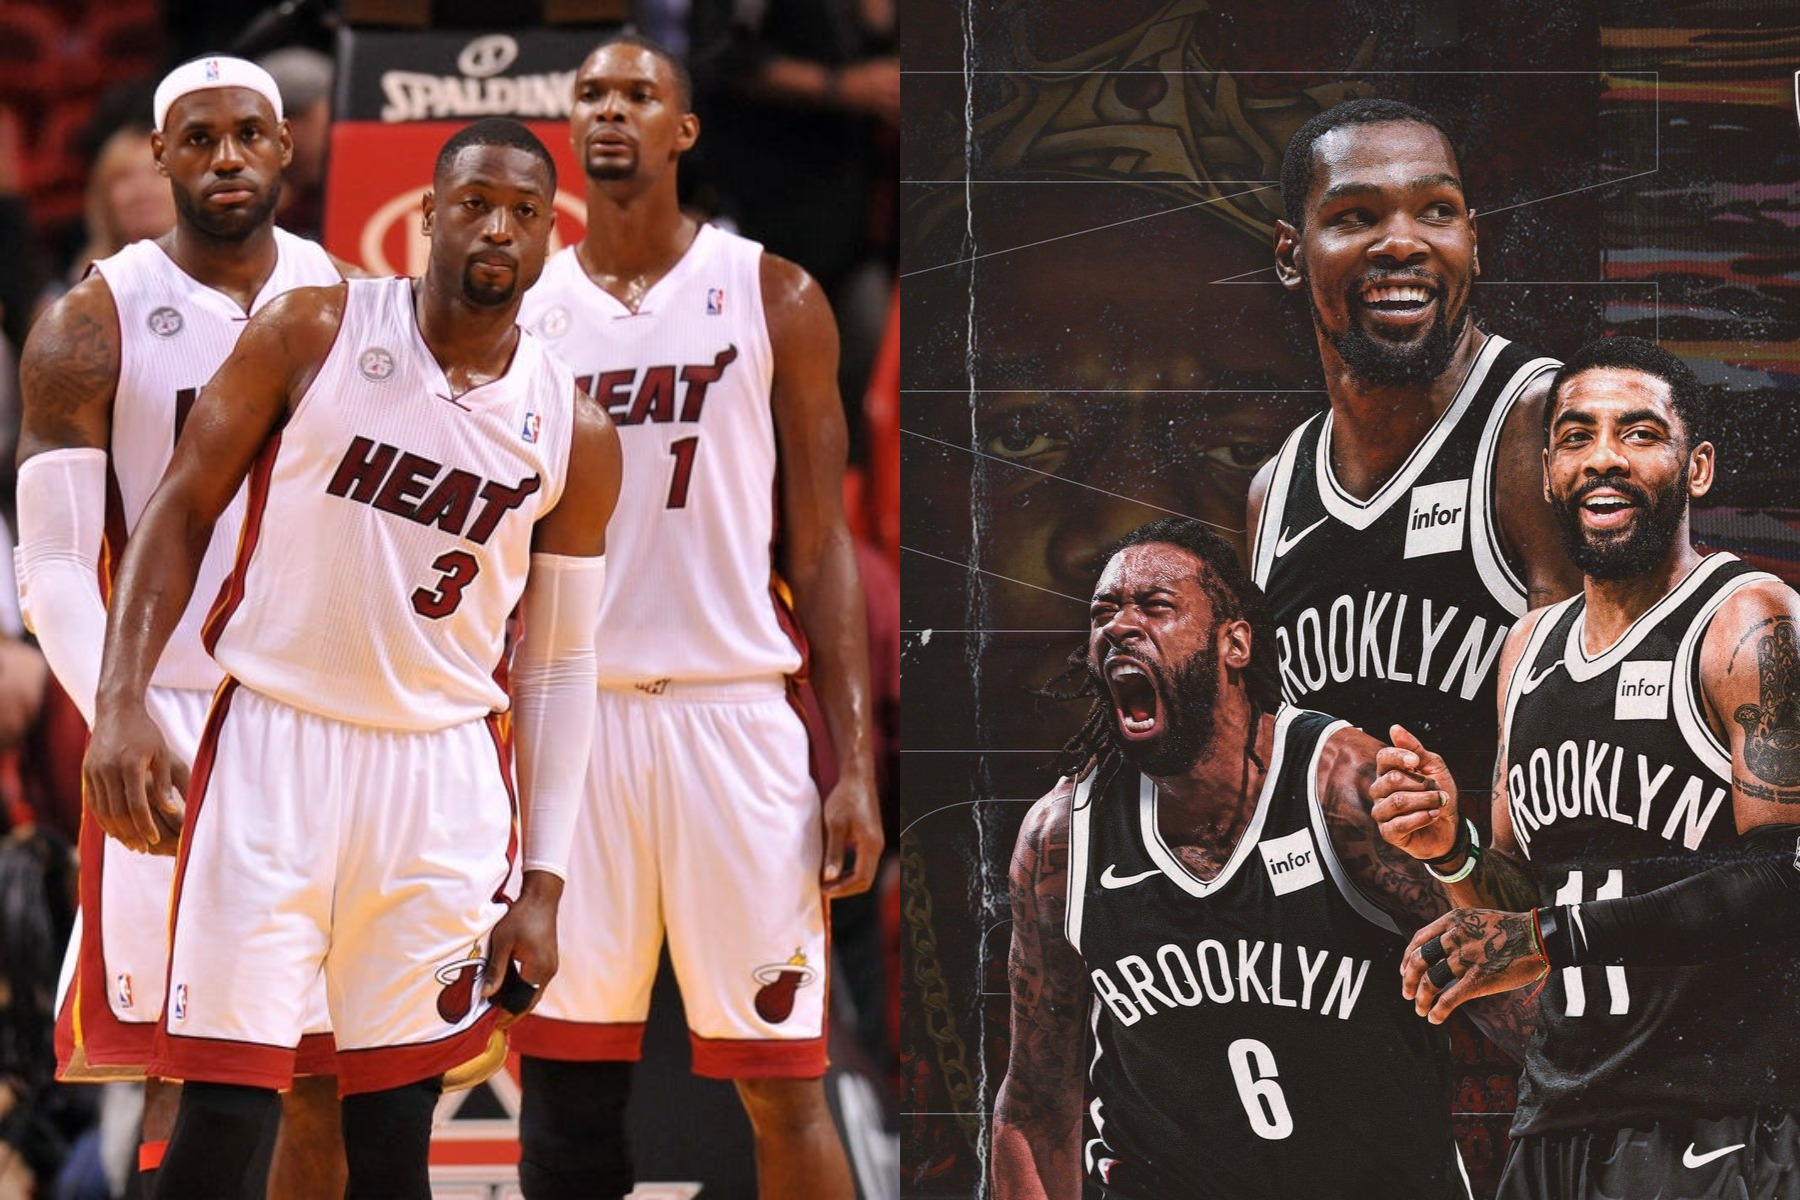 Dwyane Wade, LeBron James and Kevin Durant